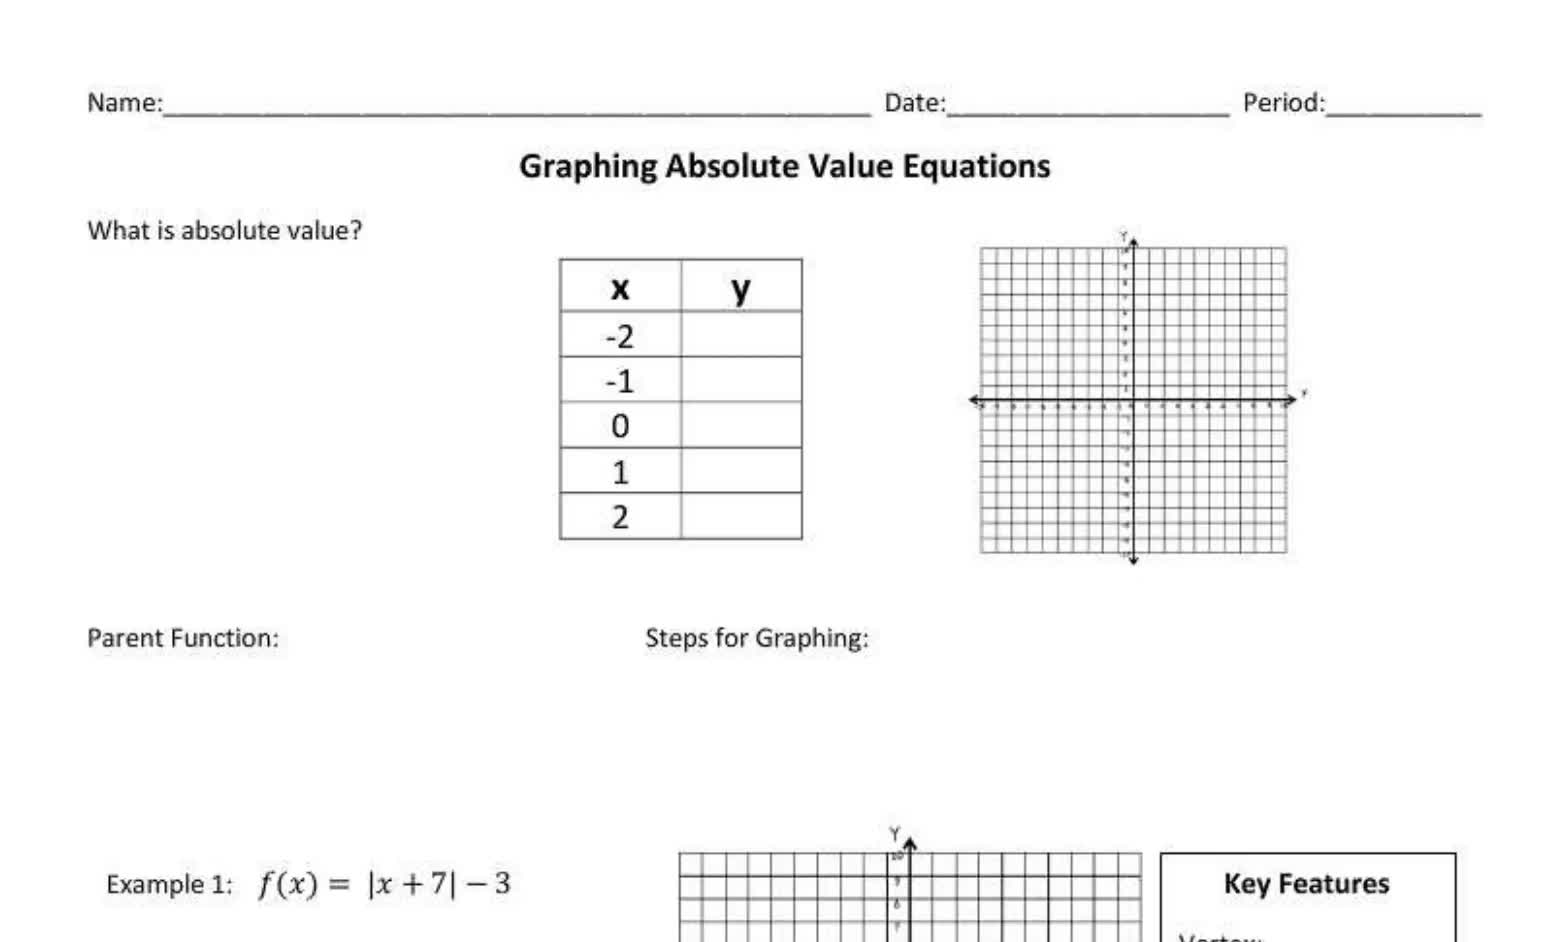 Graphing Absolute Value Functions (Regular)